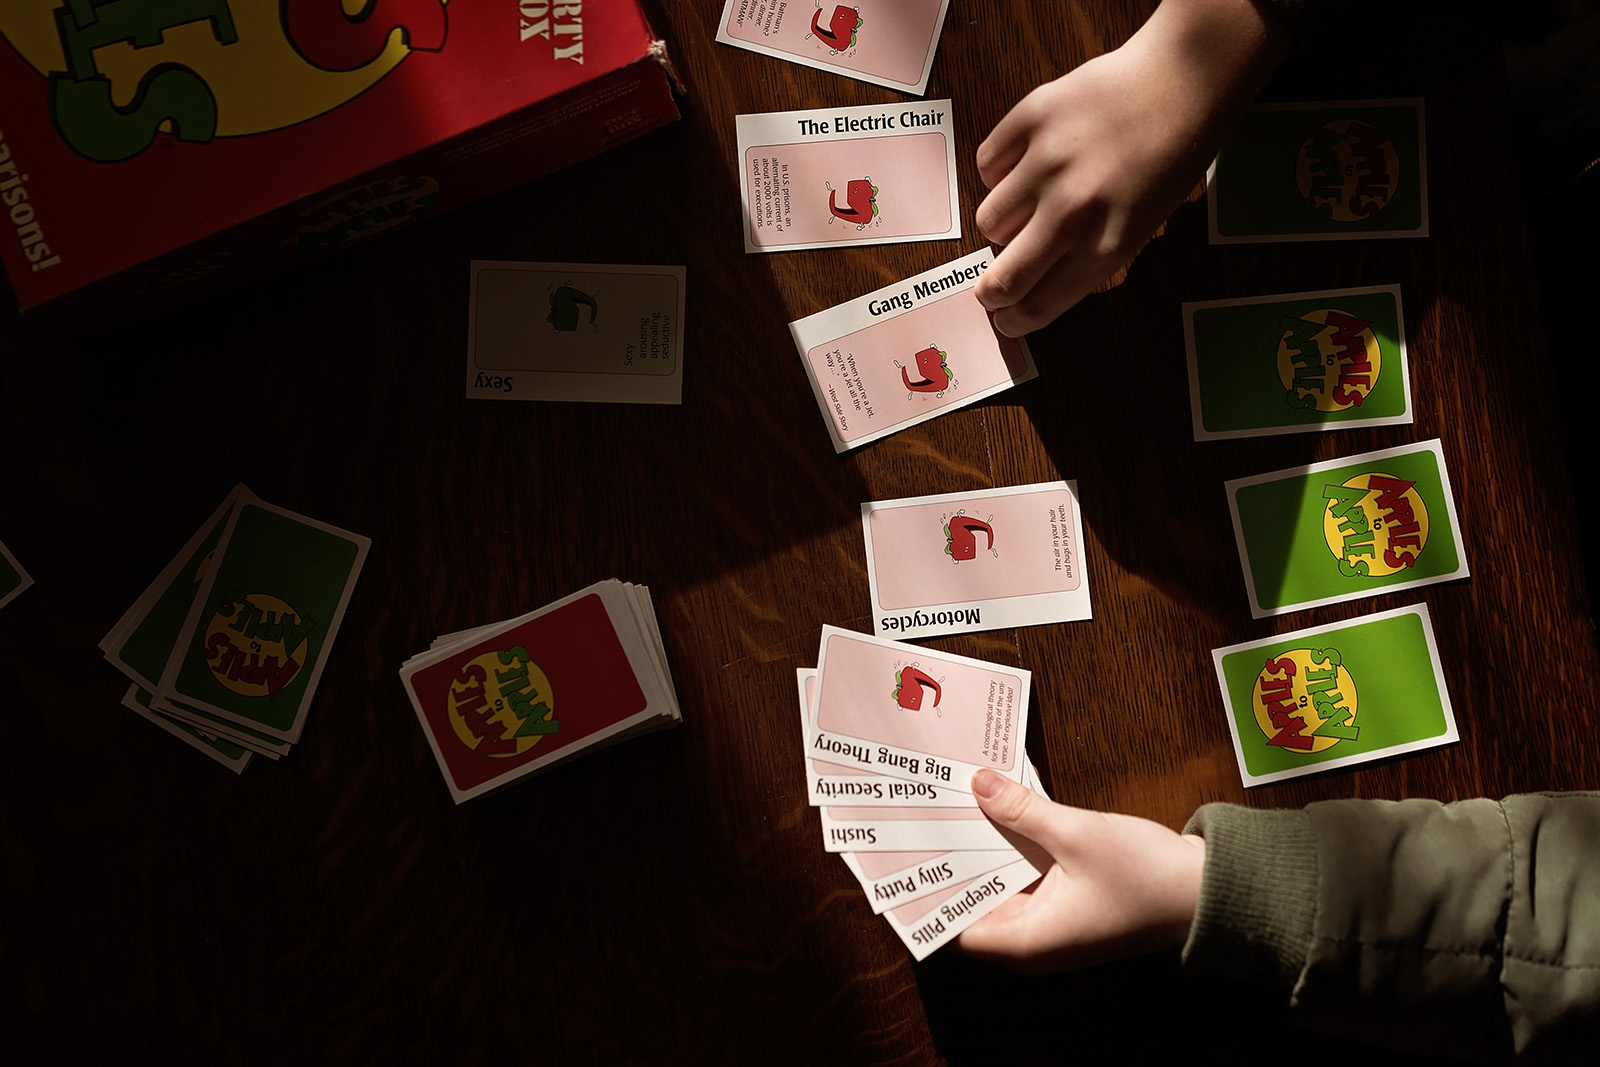 Apples to Apples game by Caroline Jensen